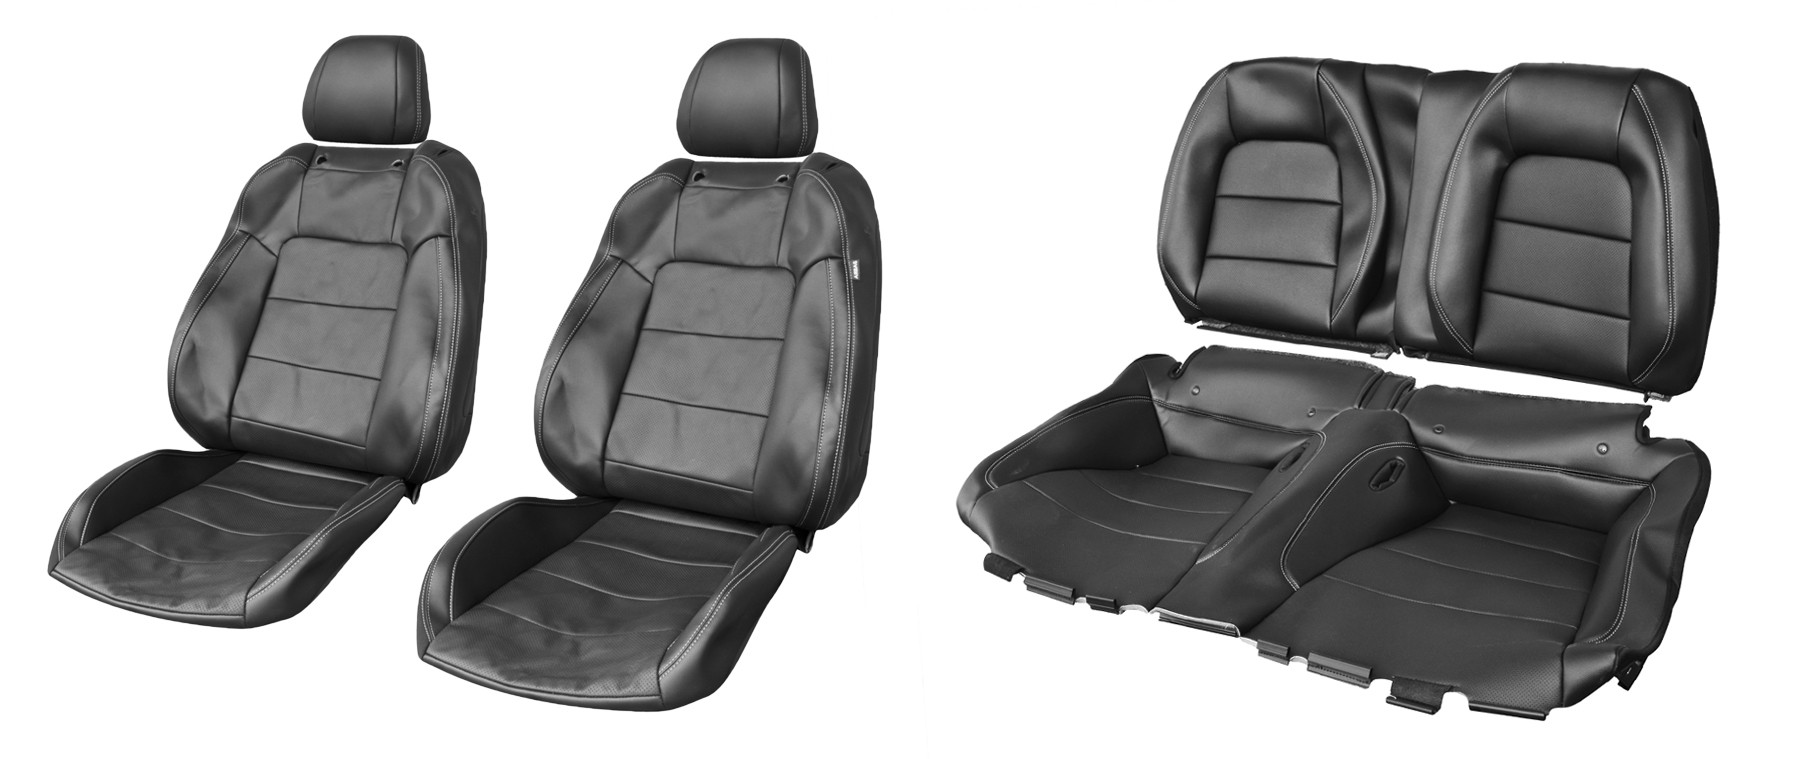 Marvelous Mustang Leather Seat Covers Oem Andrewgaddart Wooden Chair Designs For Living Room Andrewgaddartcom